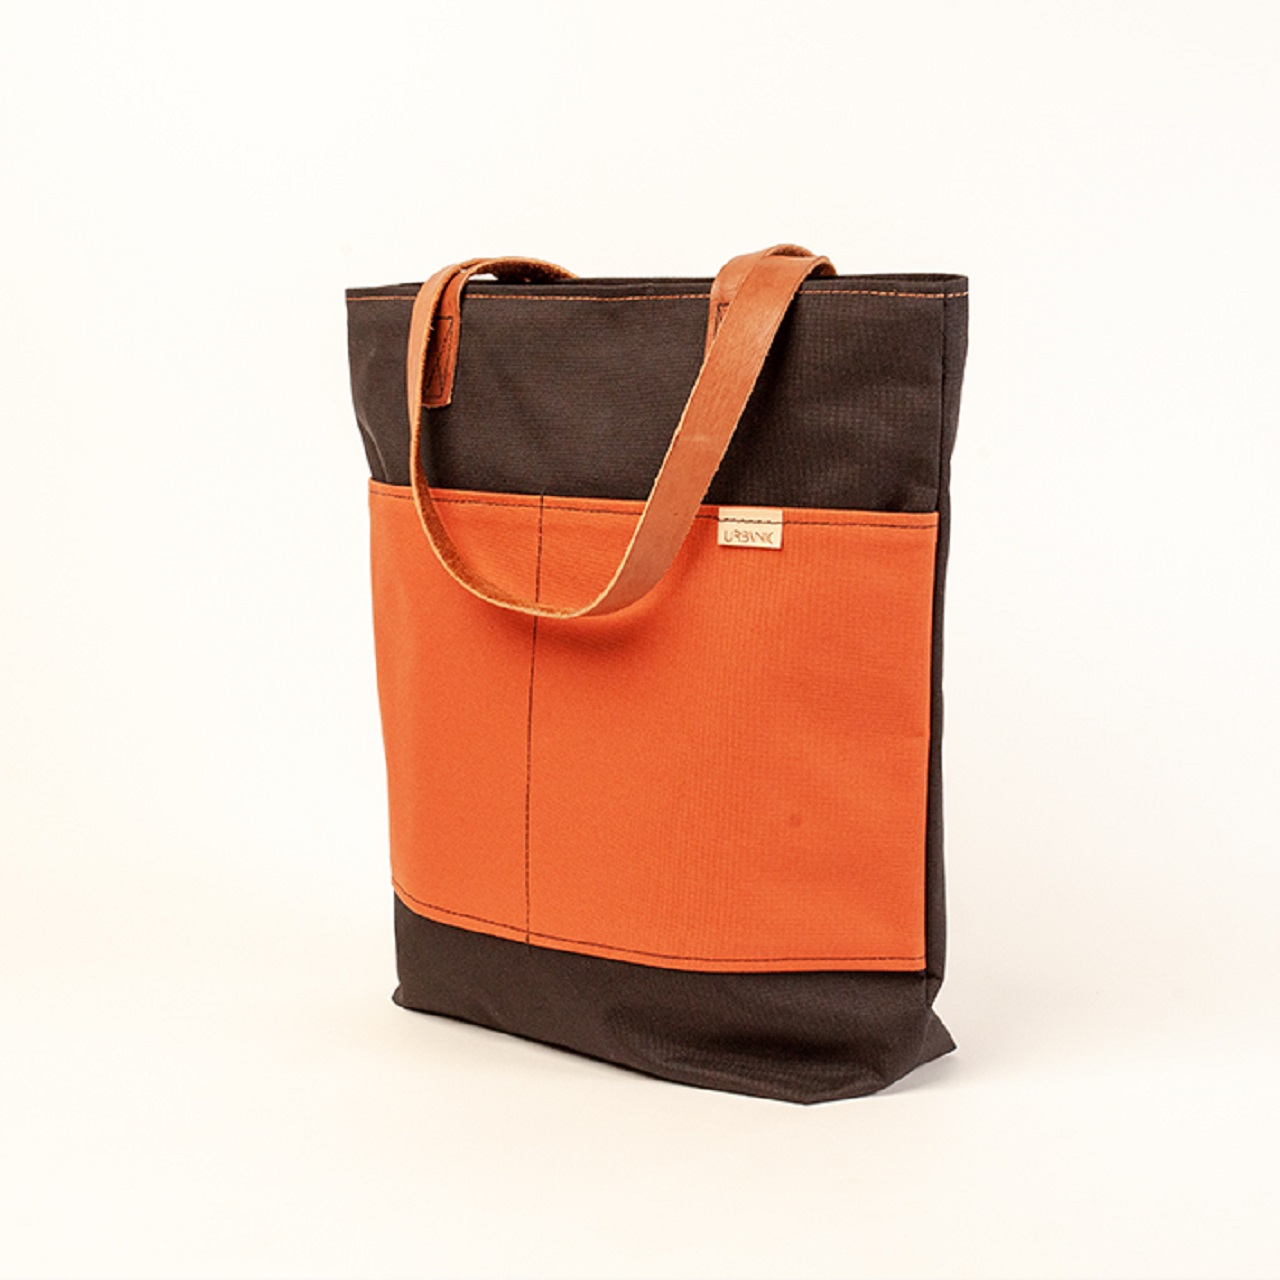 Urbanic Bag - NeroCaramello